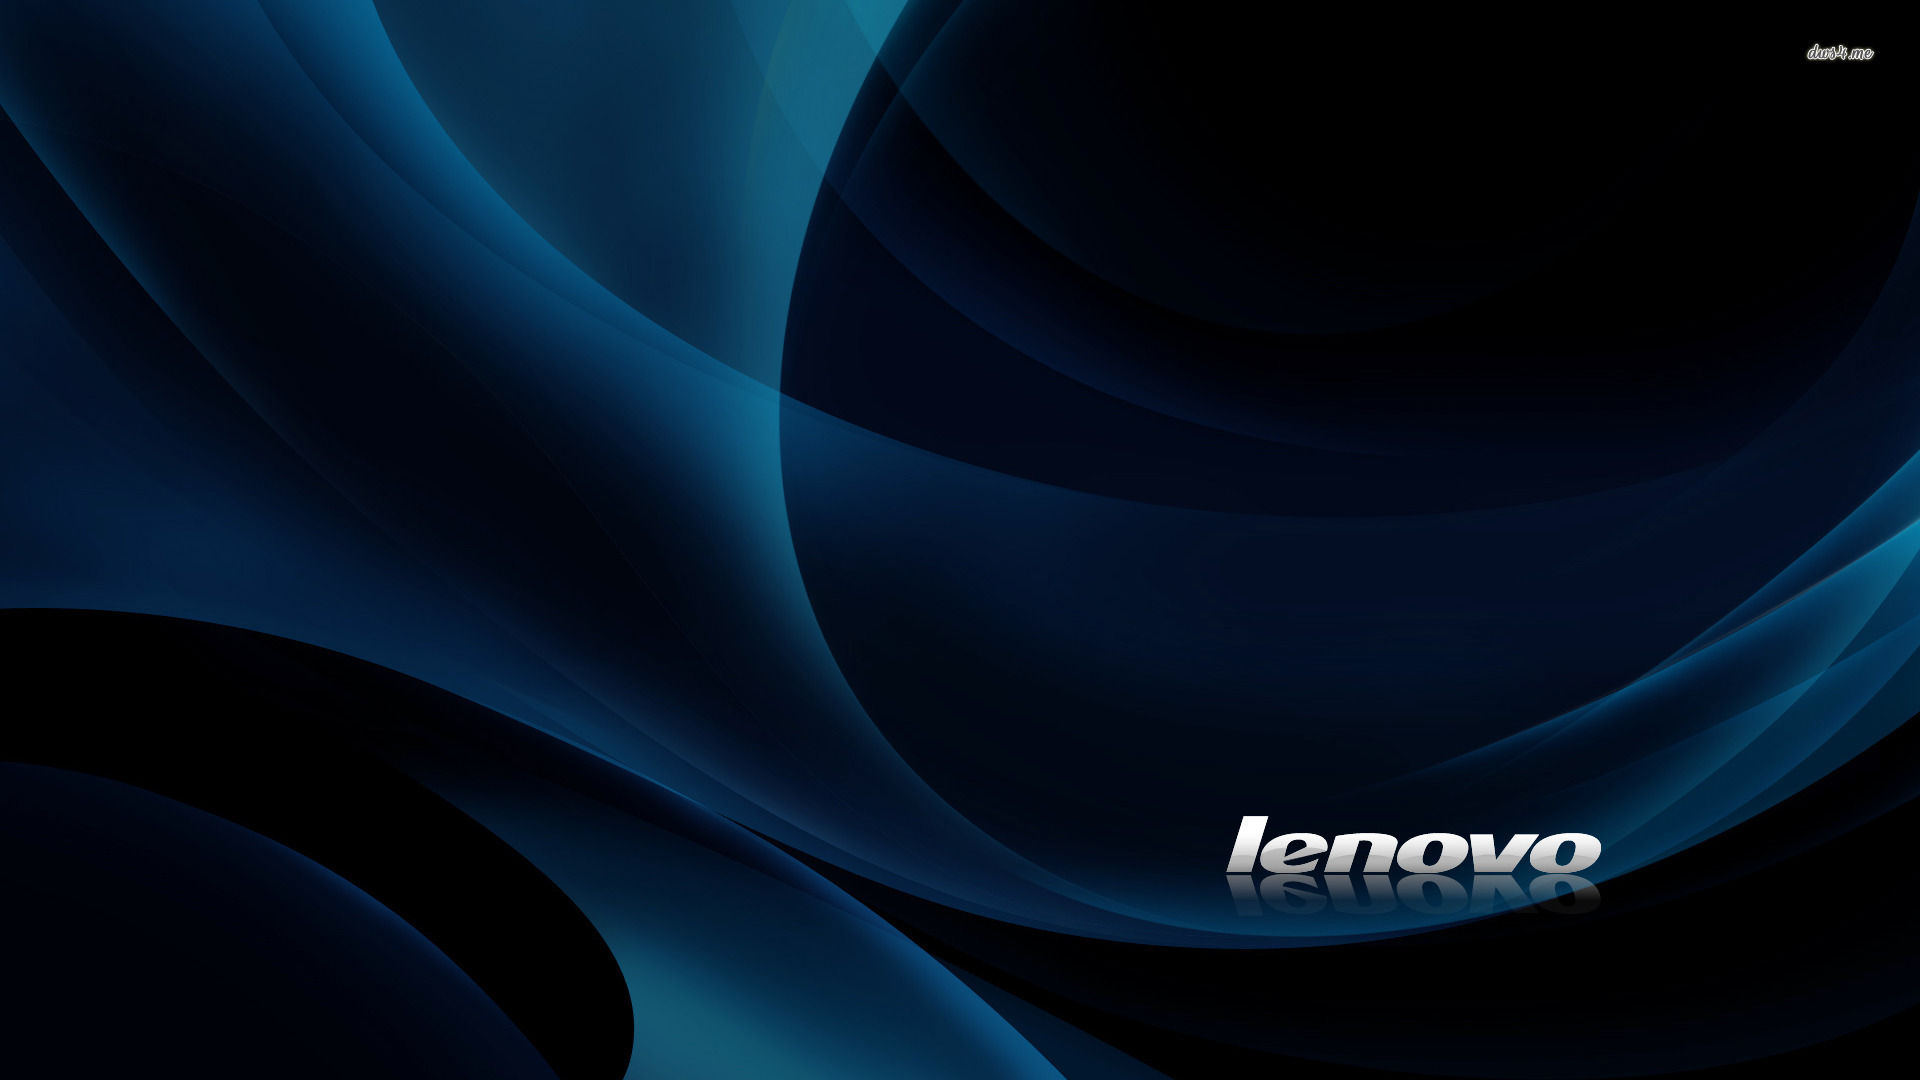 lenovo wallpaper 1920x1080 wallpapersafari. Black Bedroom Furniture Sets. Home Design Ideas